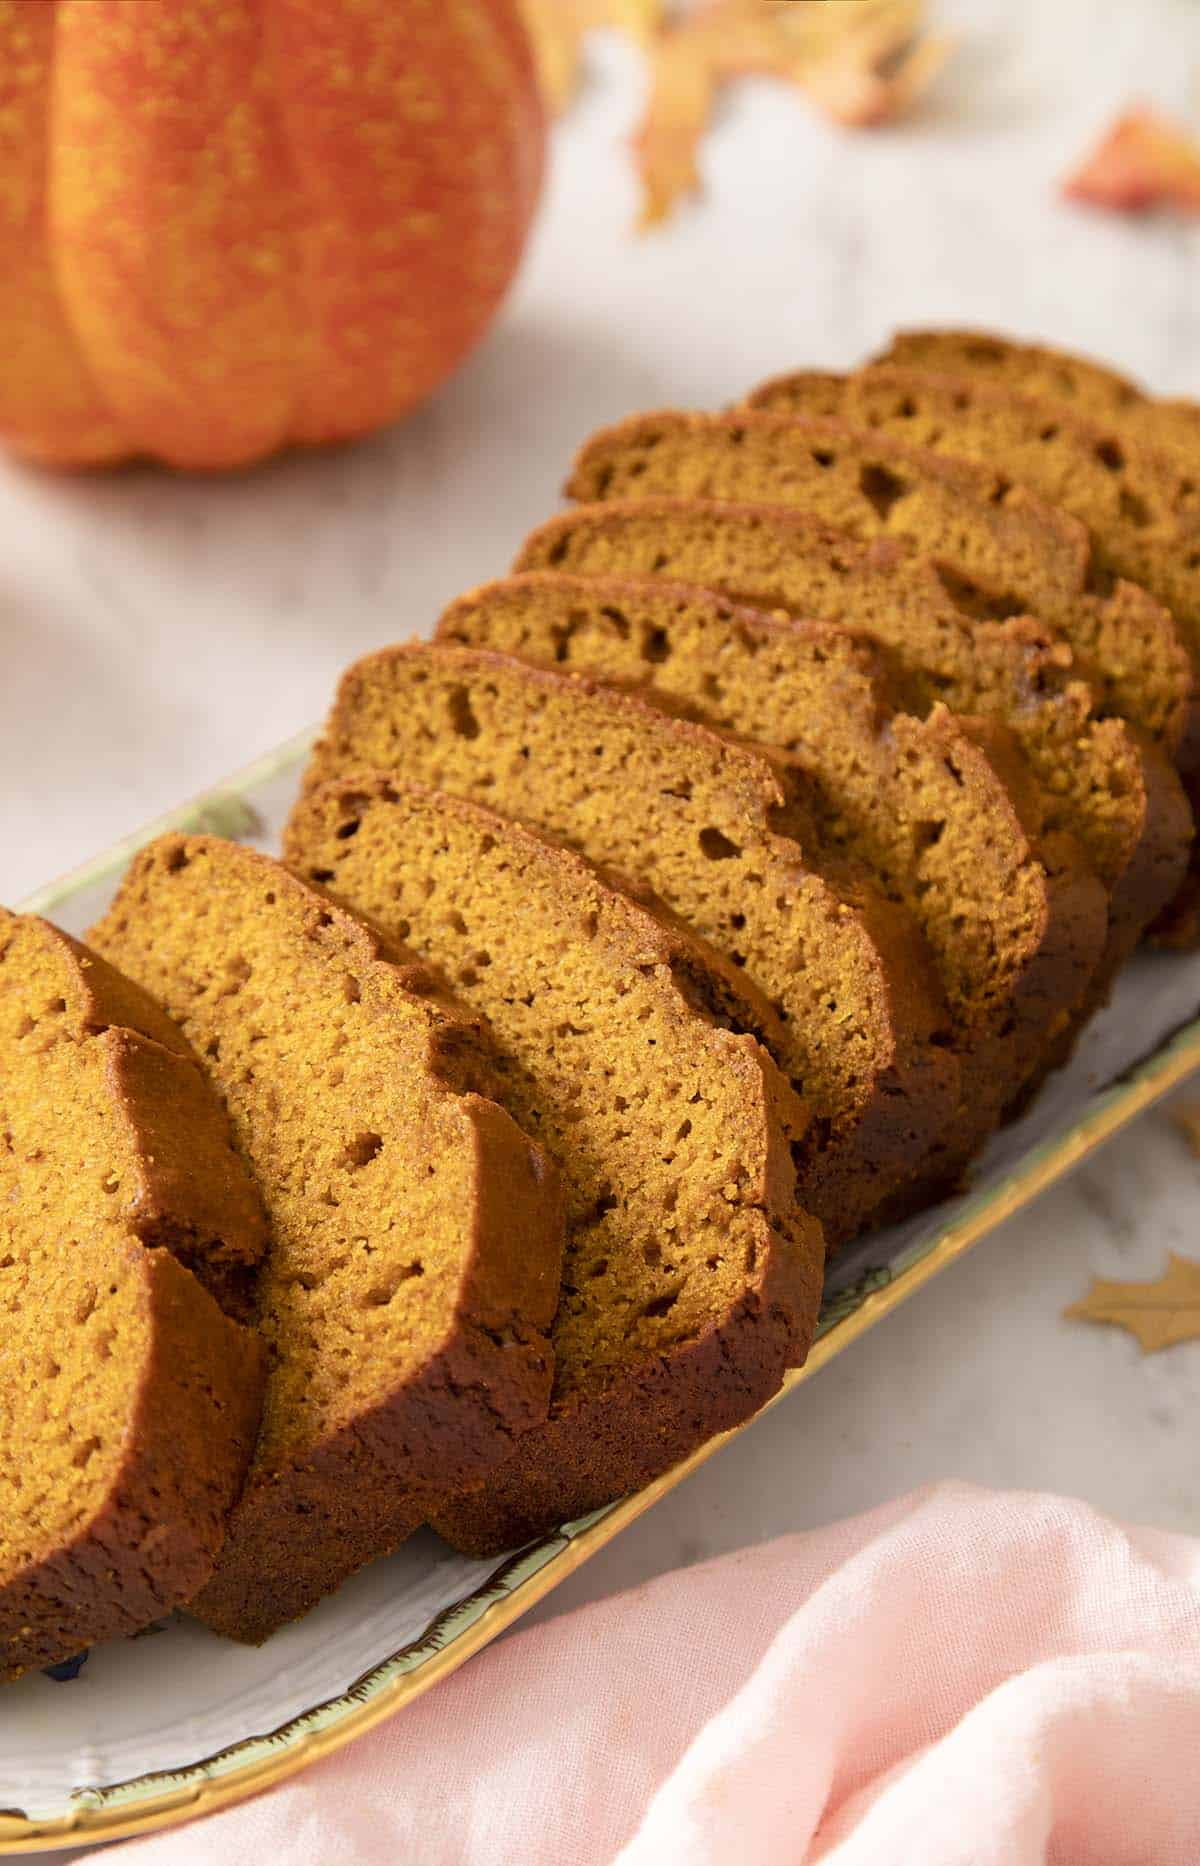 Sliced pumpkin bread on a porcelain serving plate.